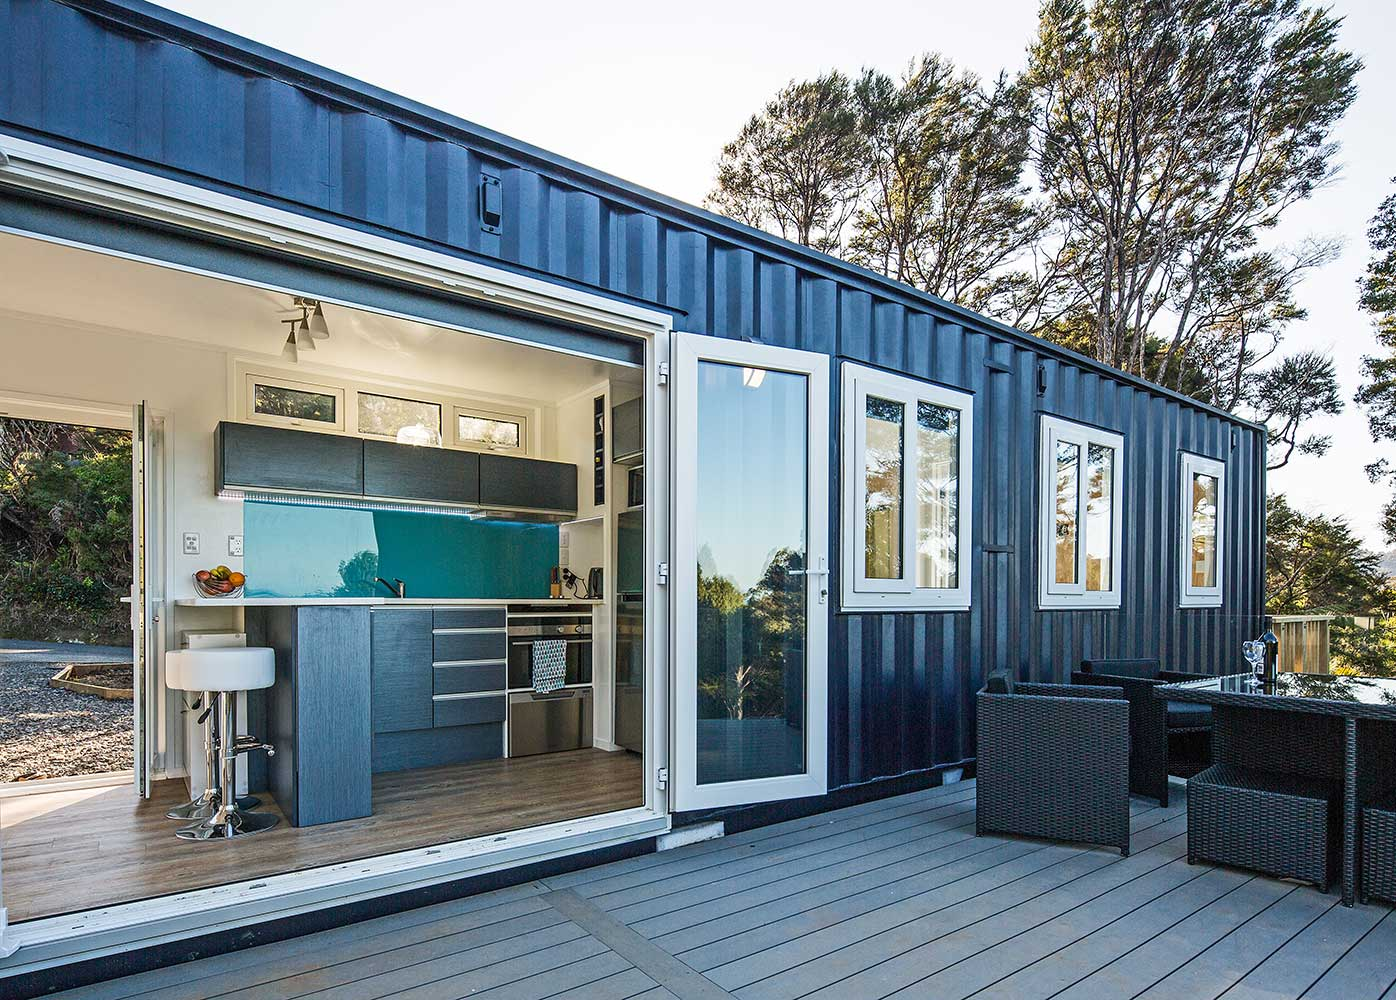 Shipping container homes: building your own DIY container house on zero entry home plans, zero landscaping designs, laneway house designs, zero energy house designs, self-sustaining underground house designs, zero lot homes, zero energy water heating system, zero clothing,